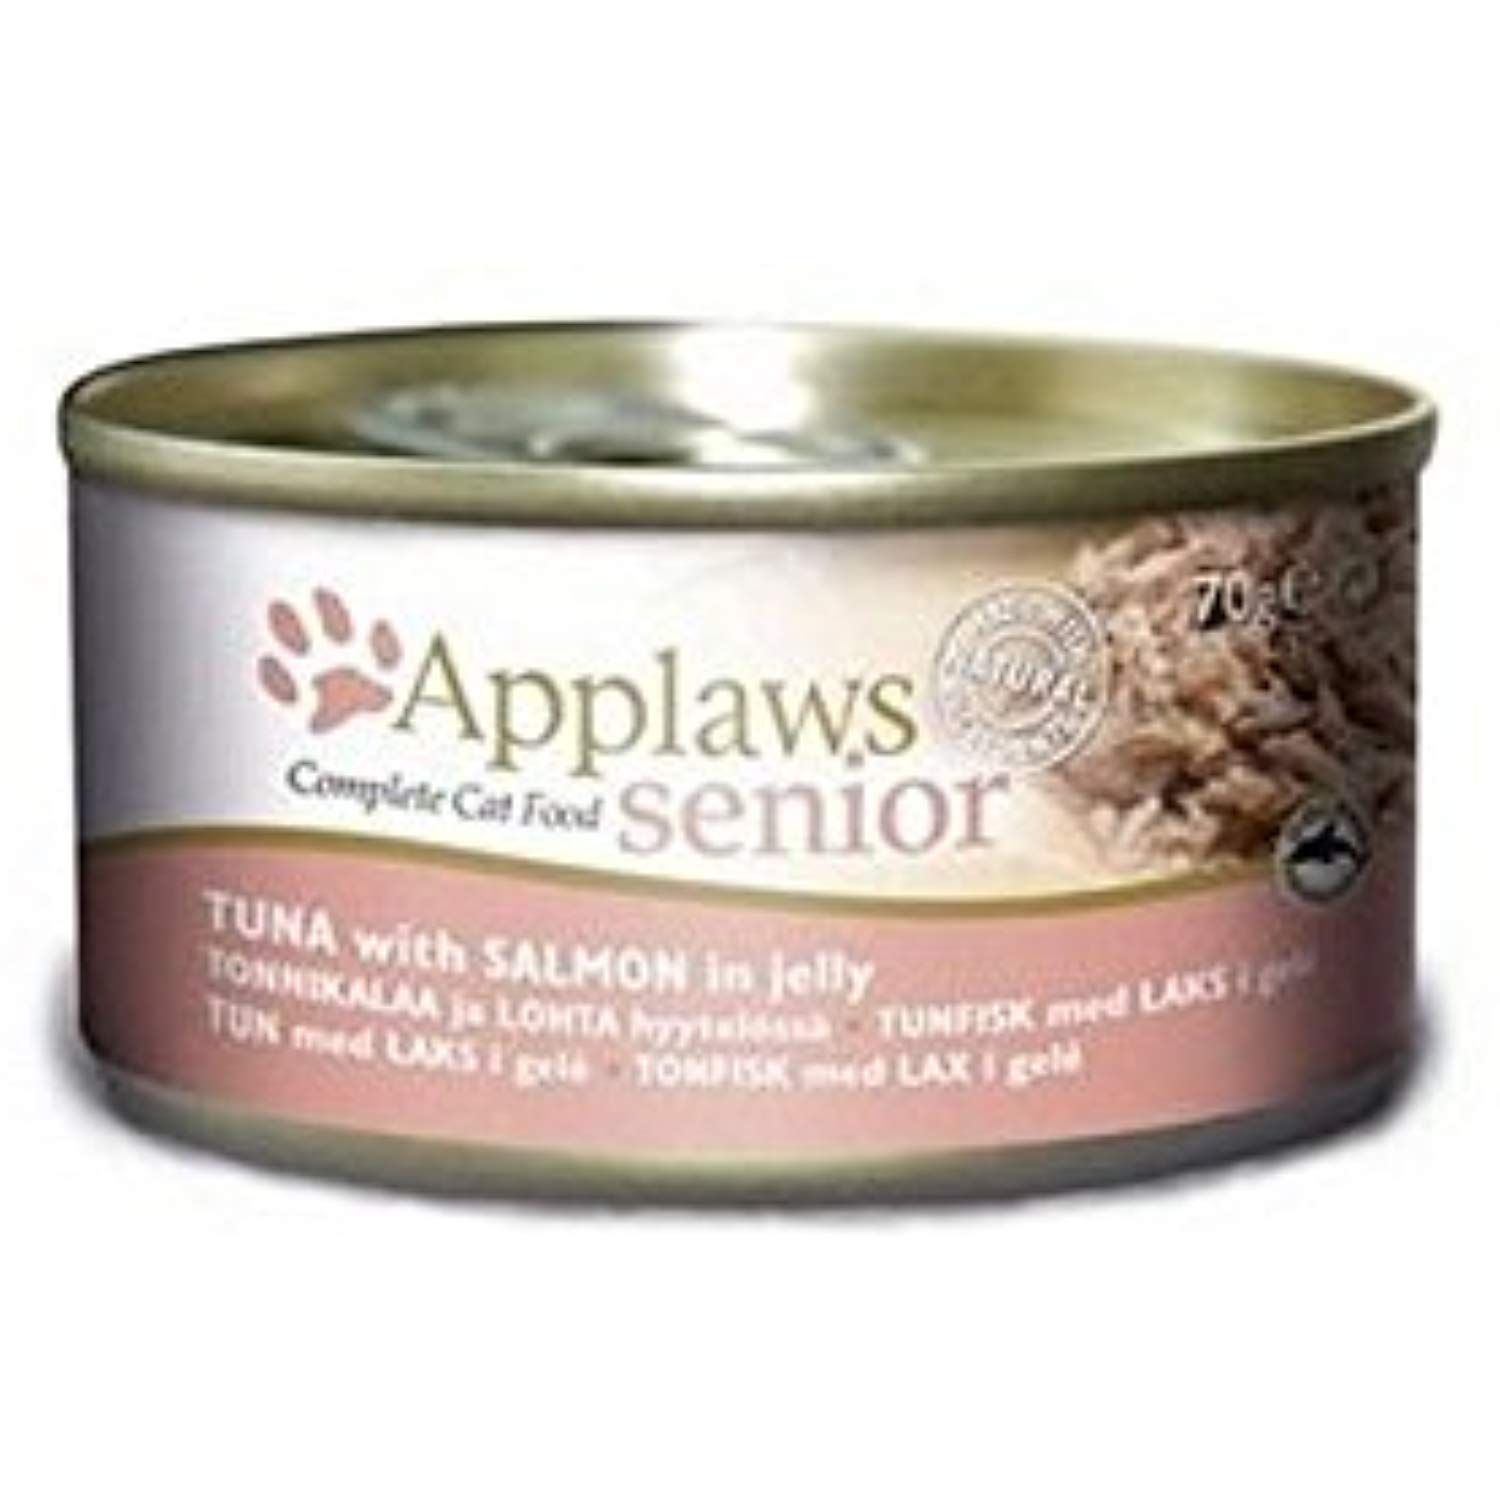 Applaws Cat Tin Tuna With Salmon In A Soft Jelly 70g Pack Of 6 See This Great Product This Is An Affiliate Link Catfood Canned Cat Food Salmon Tuna